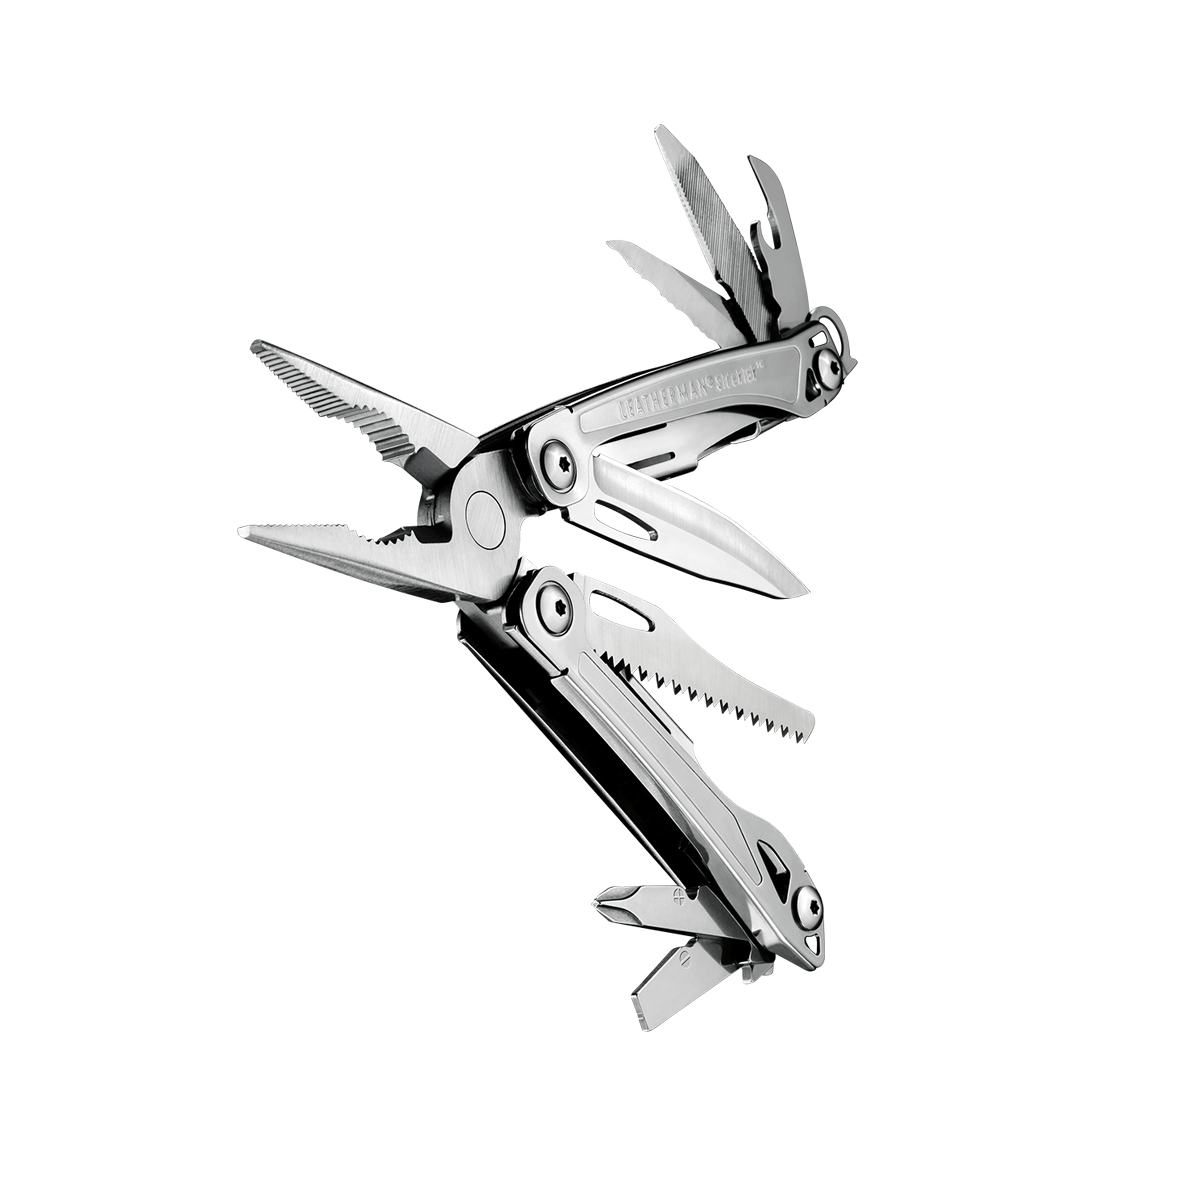 Leatherman sidekick multi-tool, stainless steel, pocket sized, 14 tools, angled open view